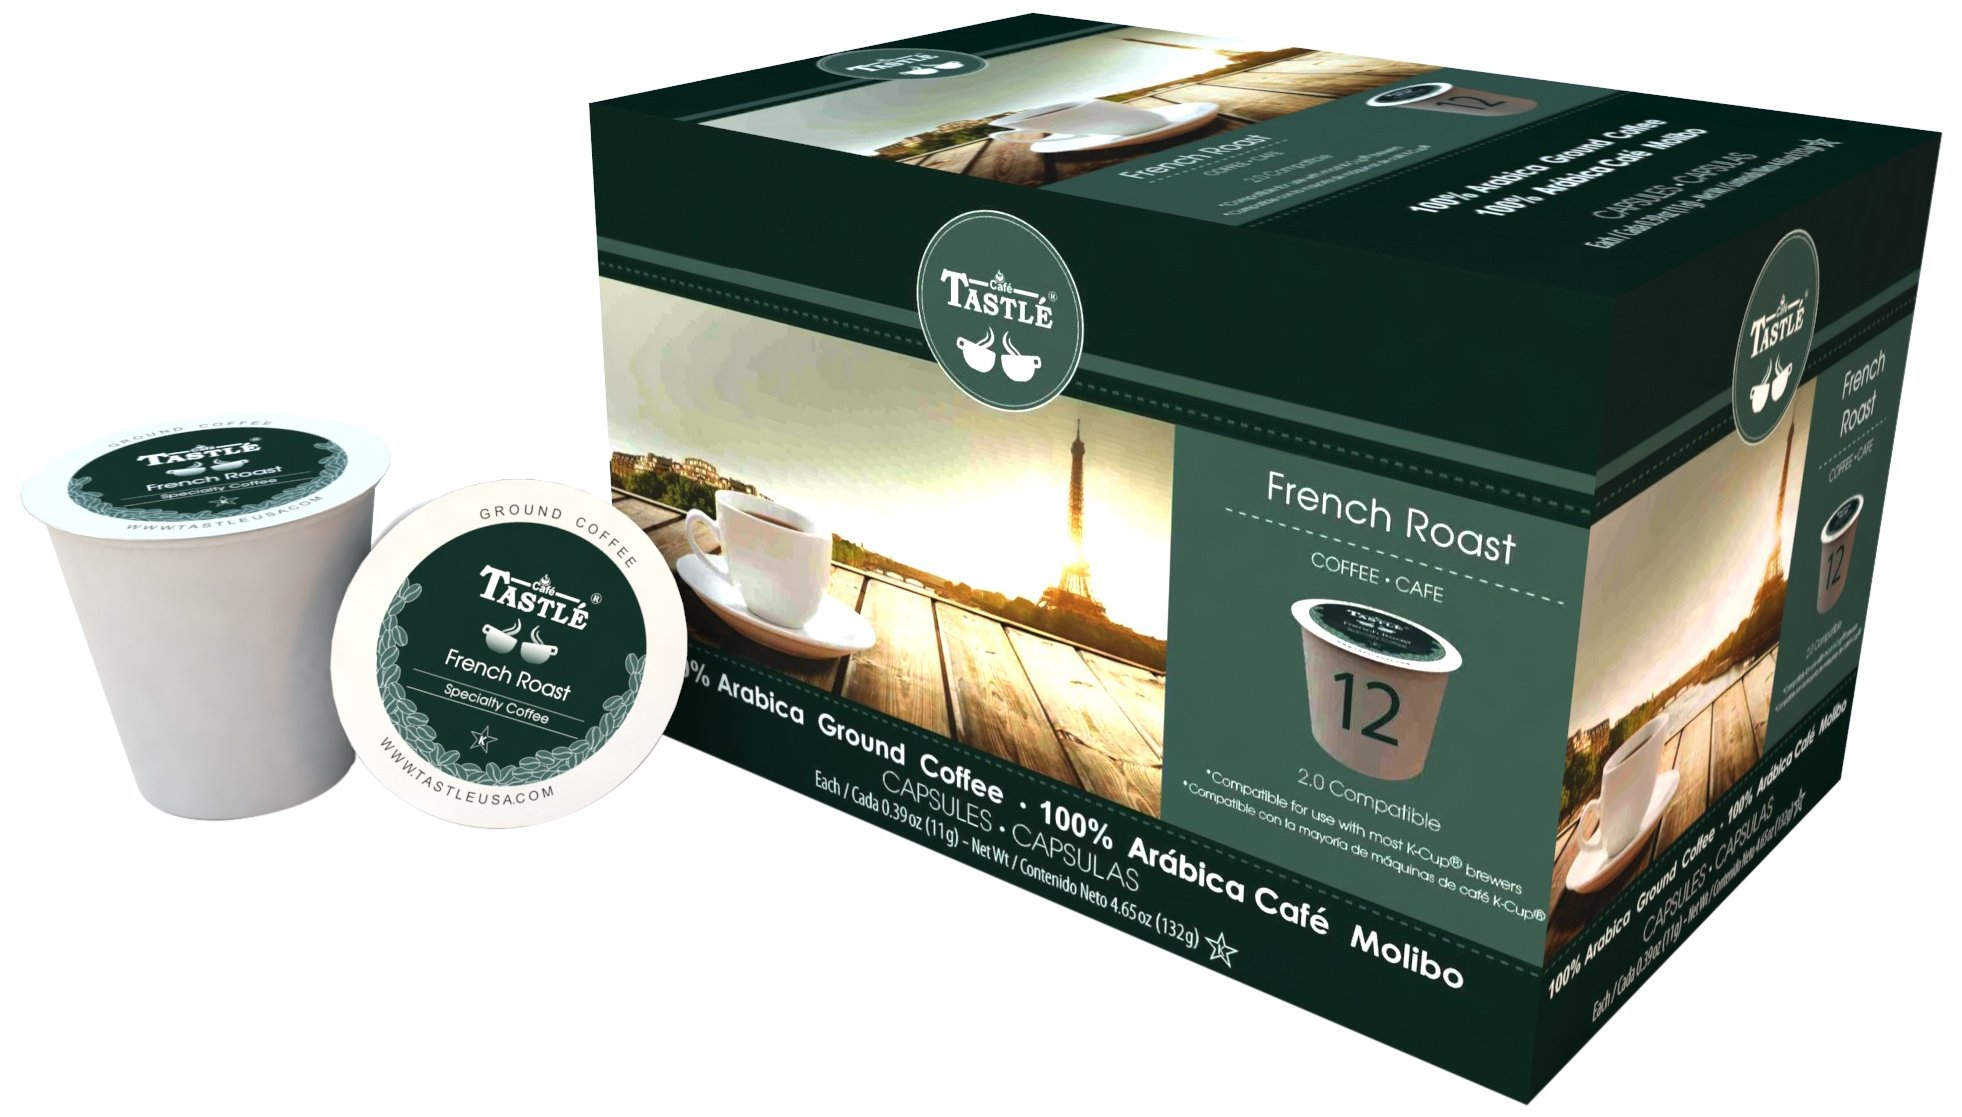 Cafe Tastlé French Roast Single Serve Coffee, 72 Count (Pack of 6)